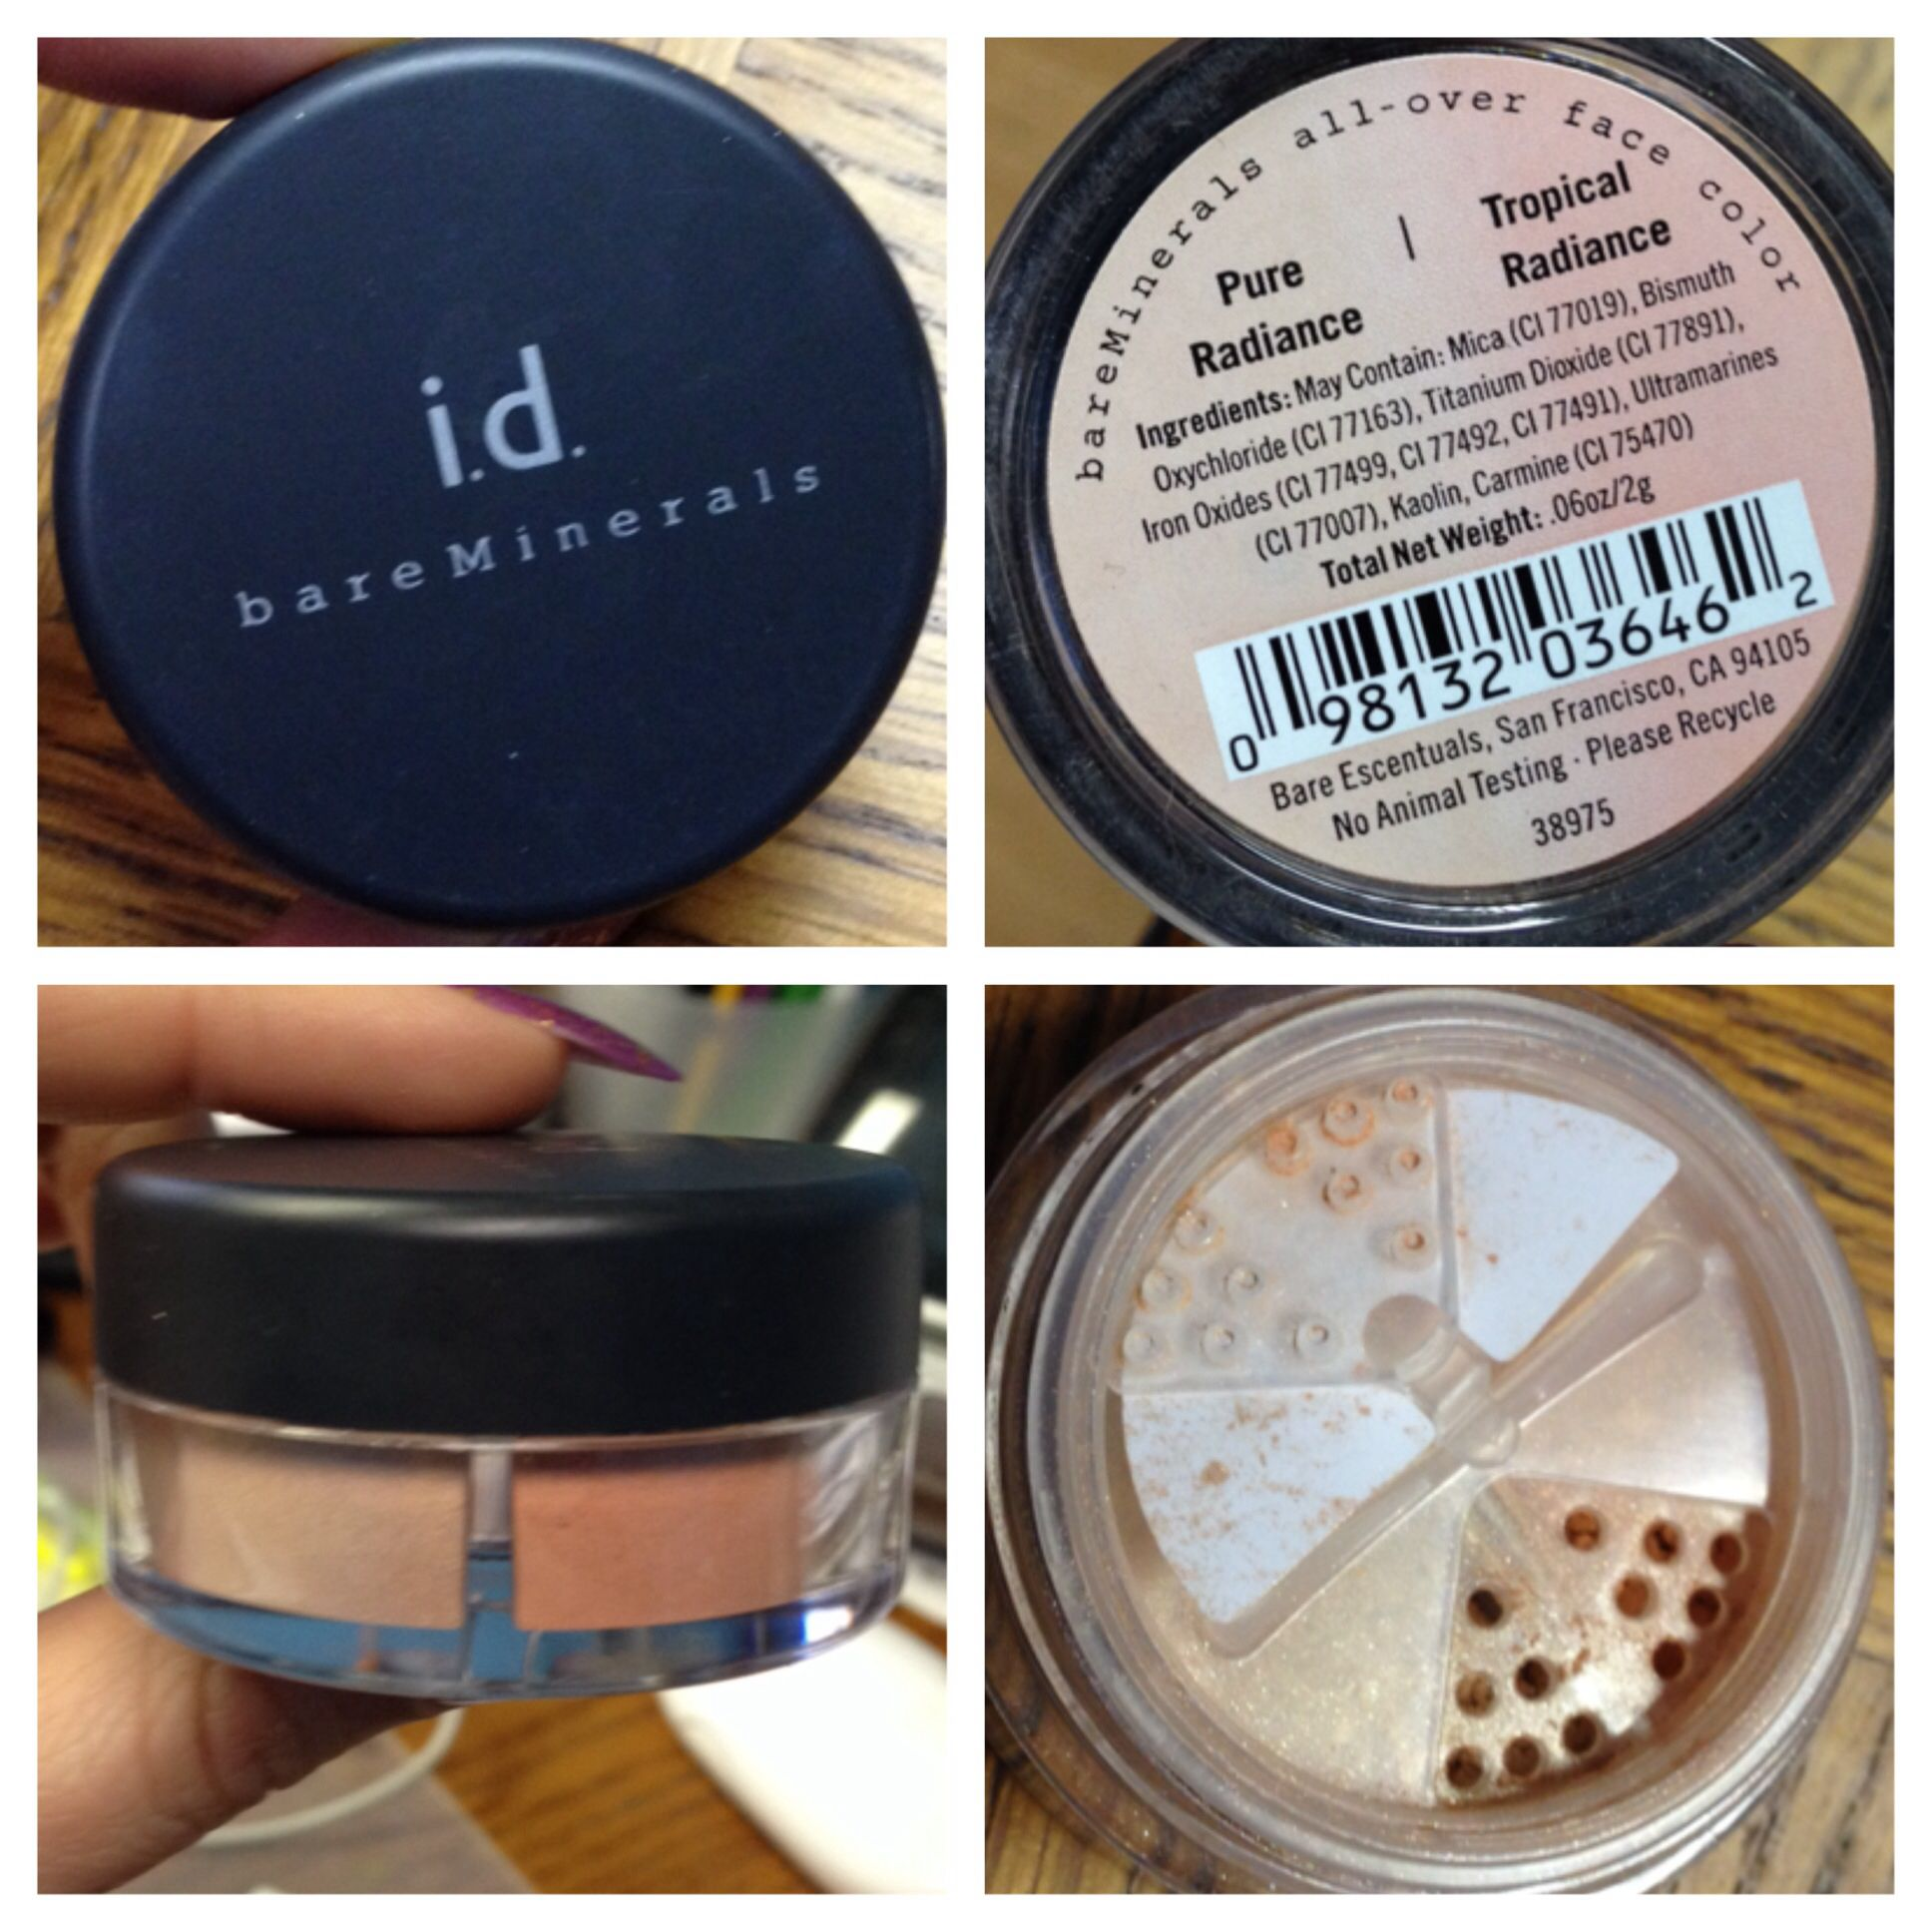 Bare Escentuals Pure Tropical Radiance All Over Face Color Duo Used A Few Times 14 Pure Products Bare Escentuals Bare Minerals